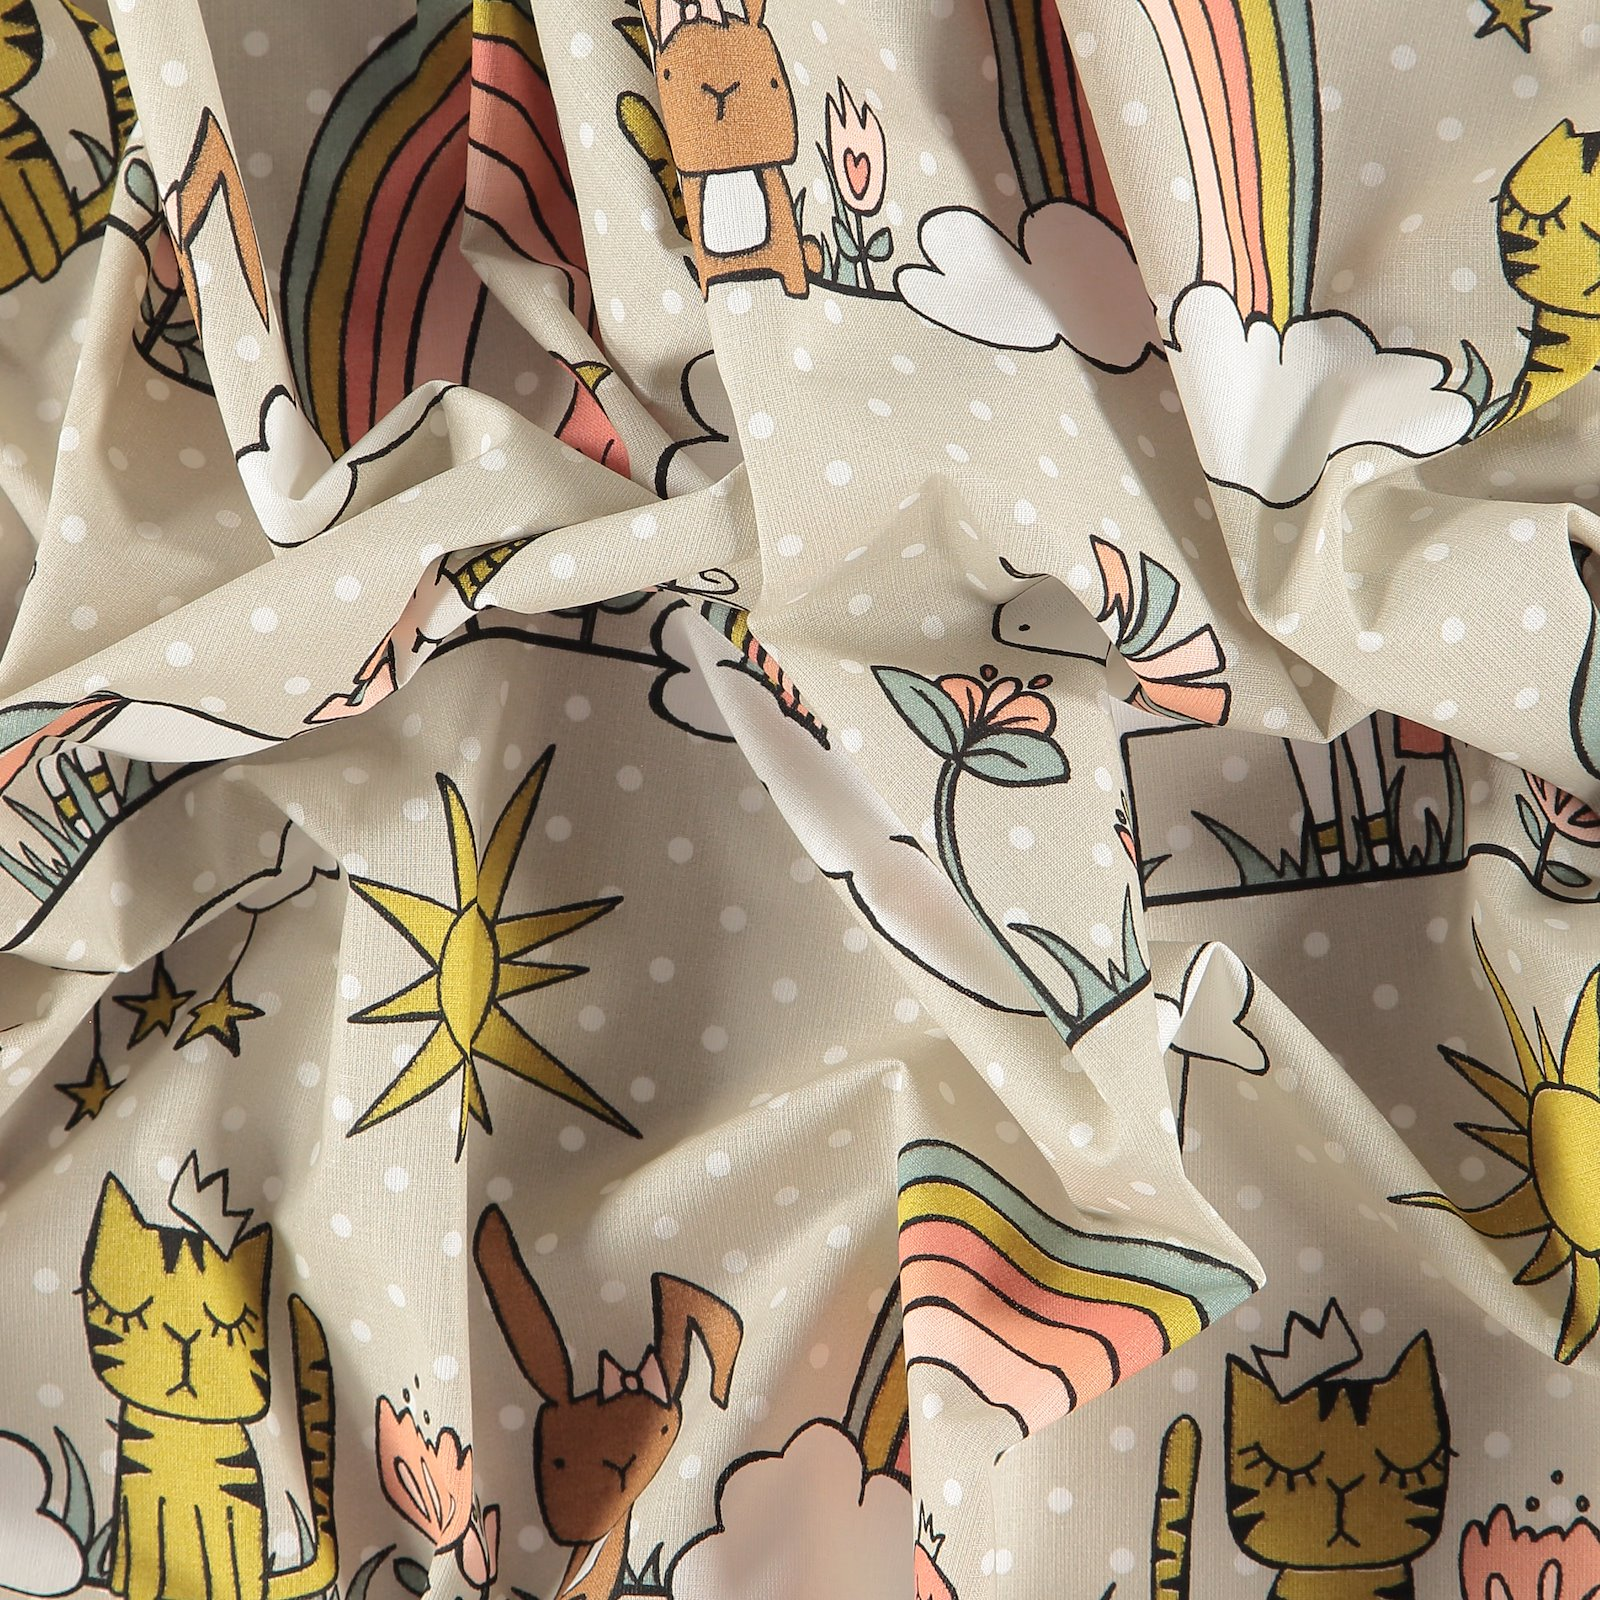 Cotton light sand with dots and animals